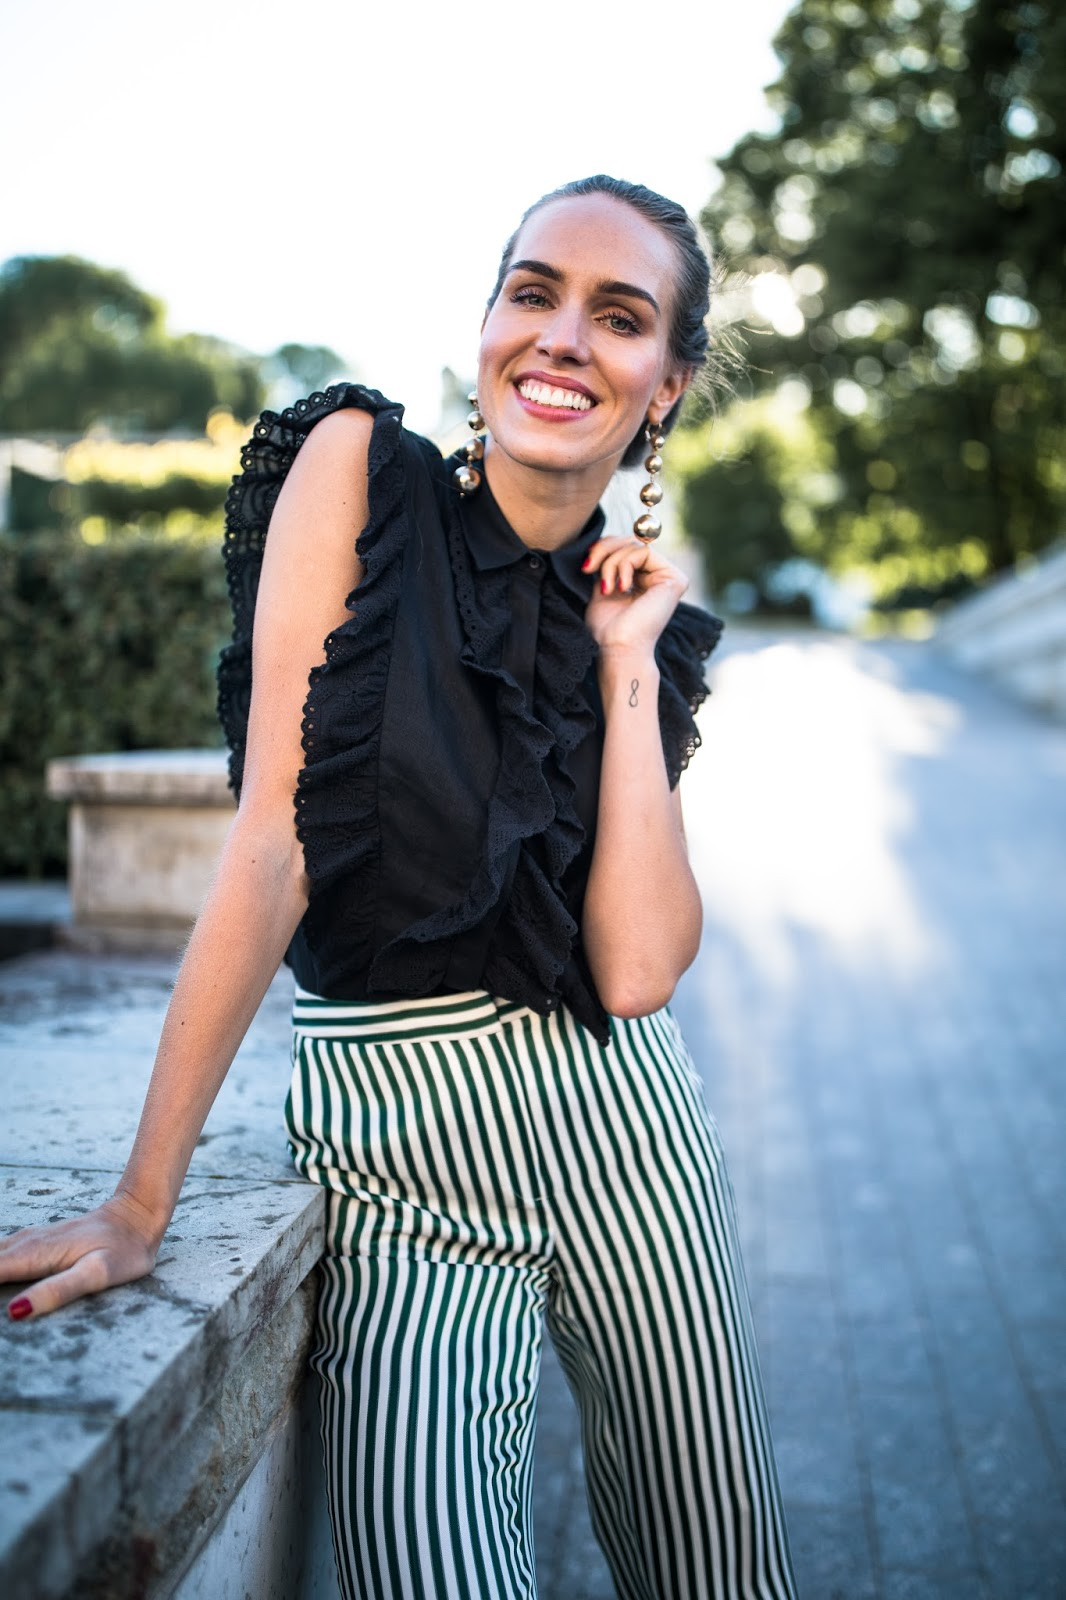 black ruffle top outfit street style